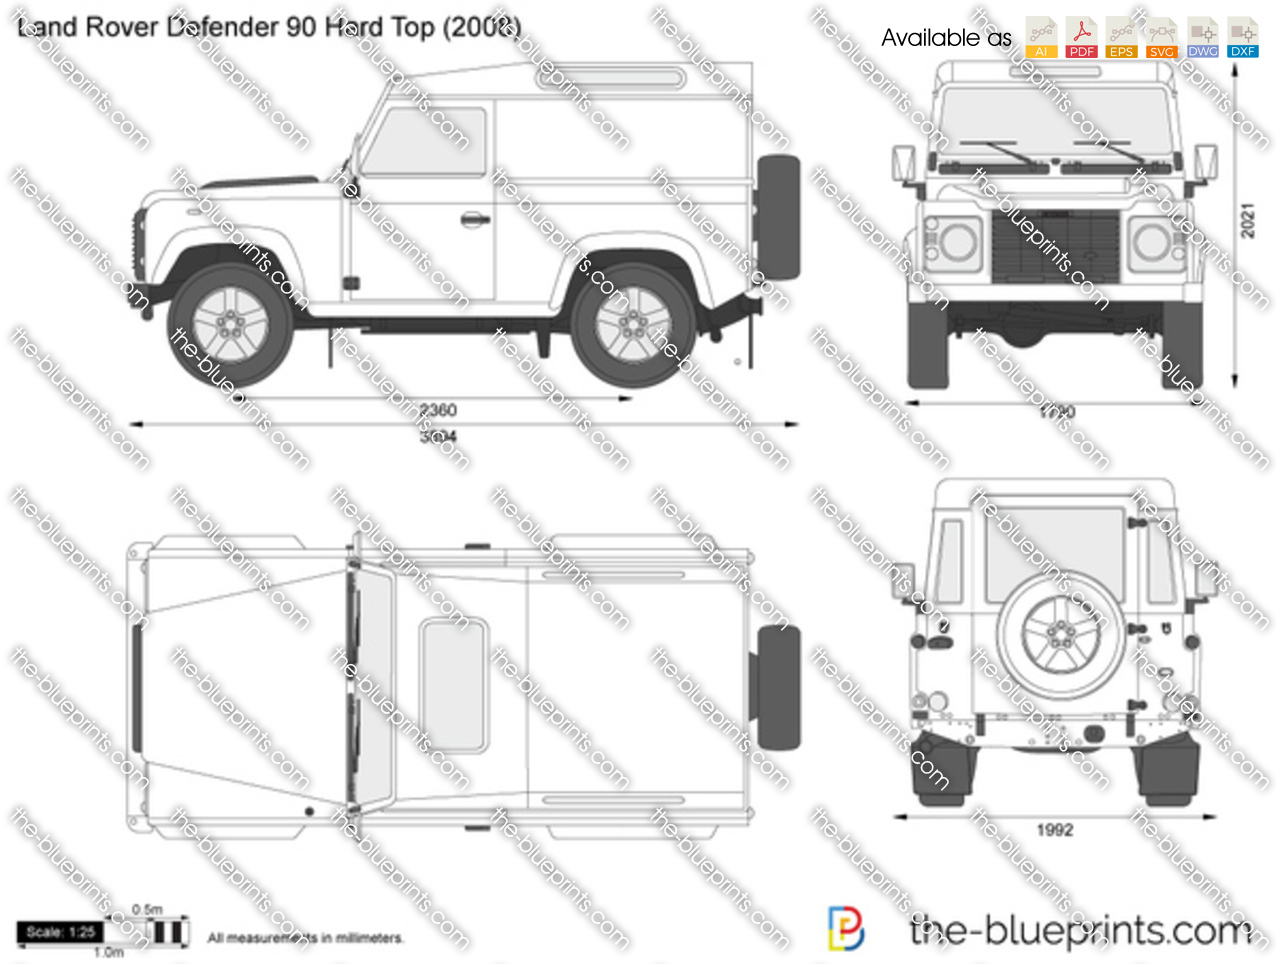 Land Rover Defender 90 Hard Top 2008